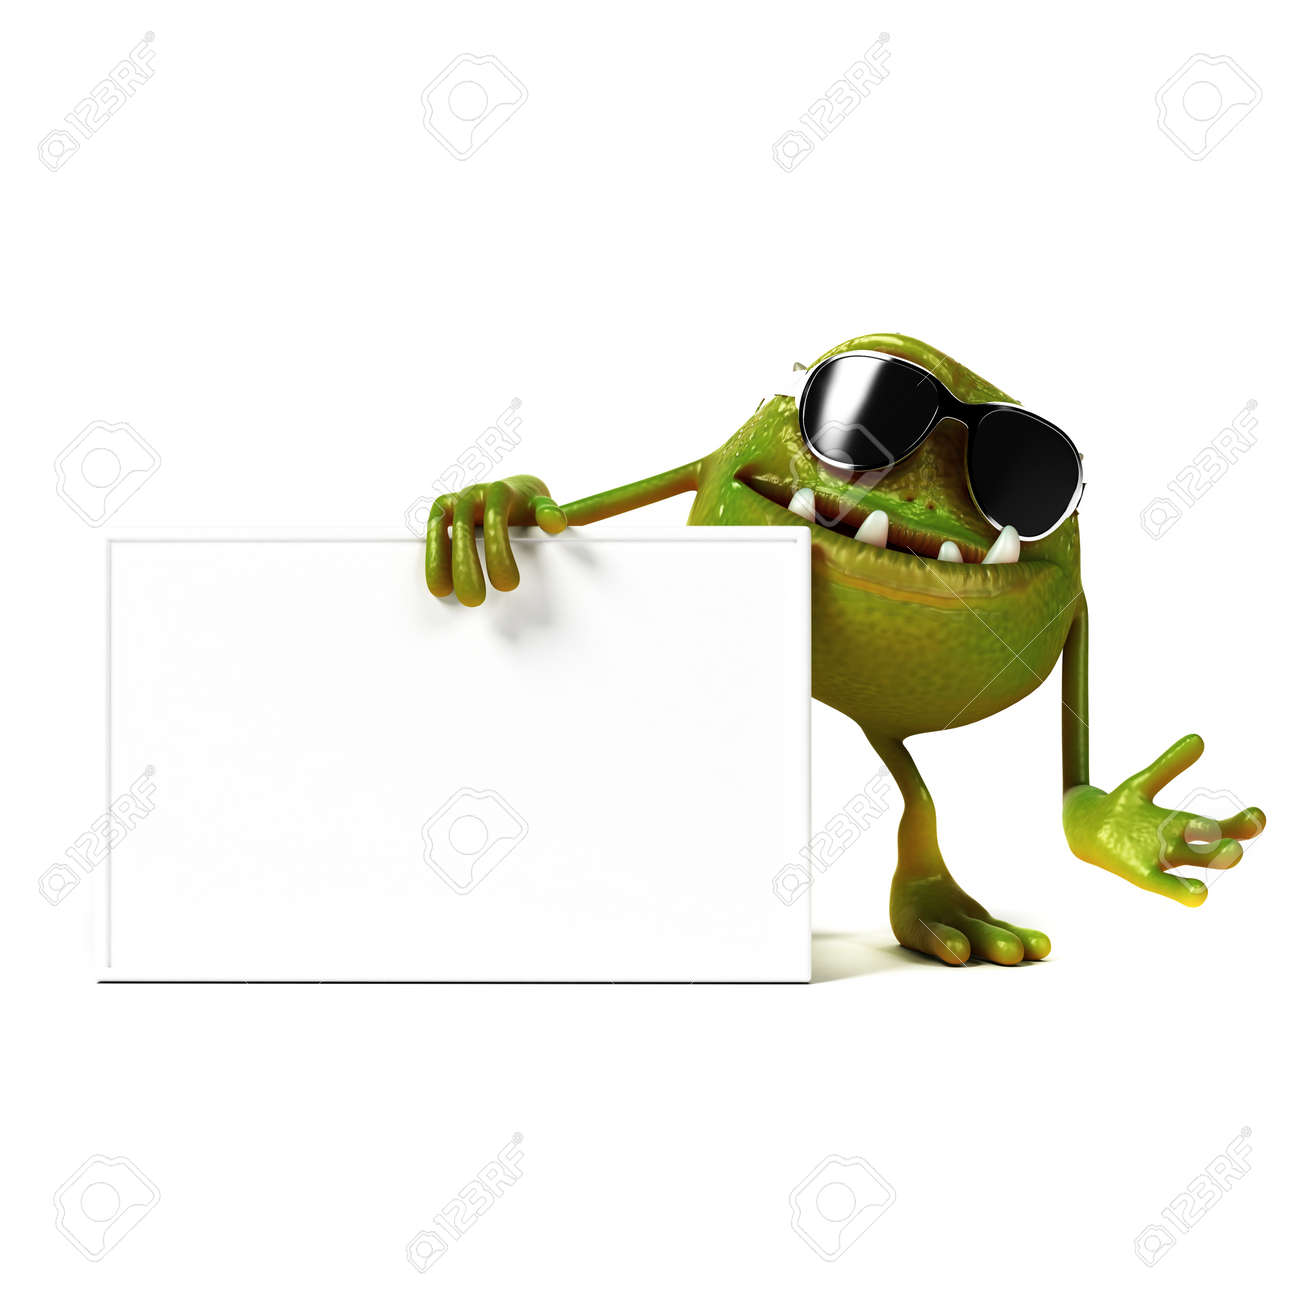 3d rendered illustration of a funny bacteria toon Stock Photo - 17904774